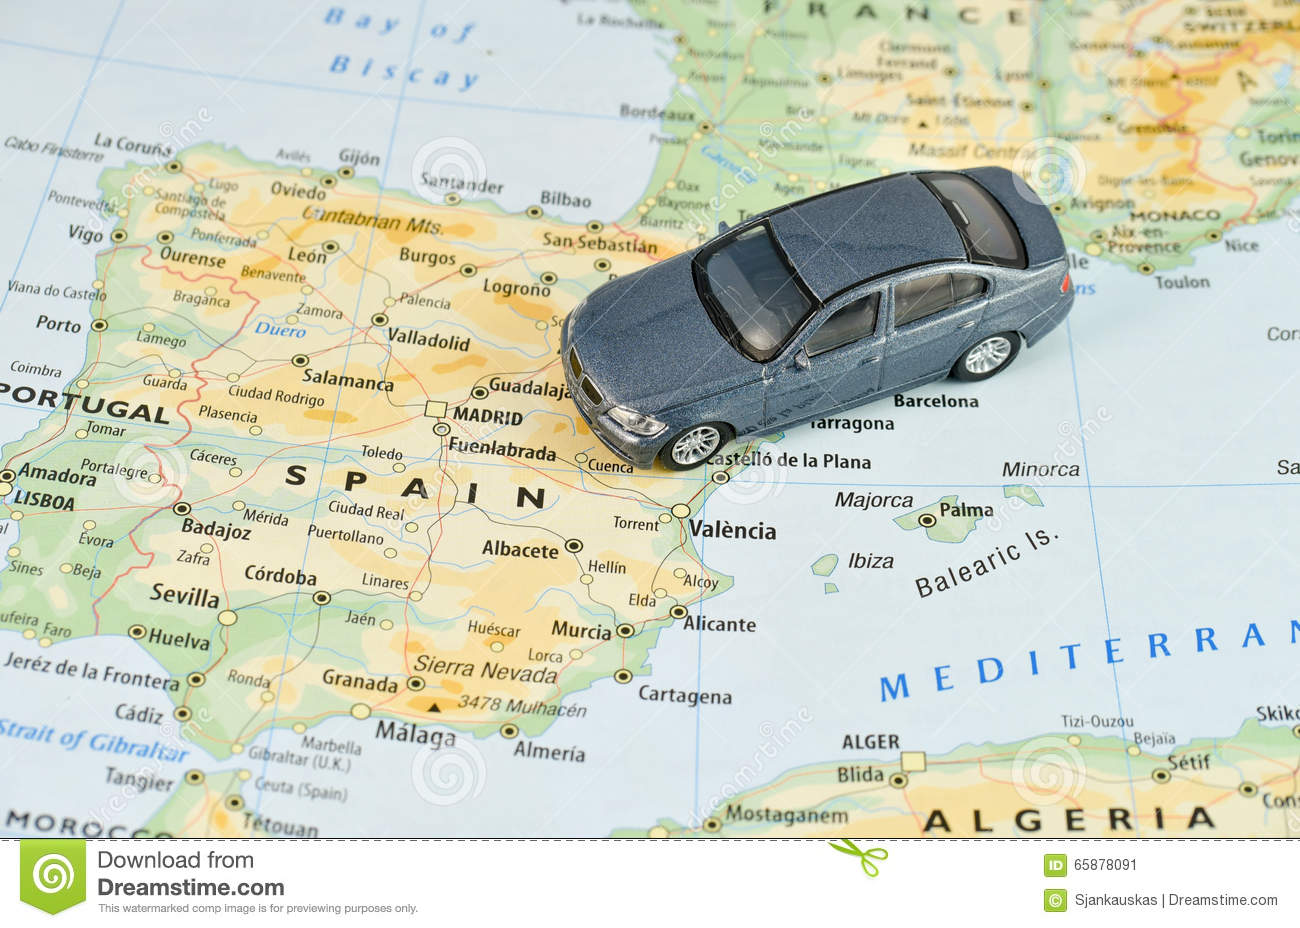 trip to spain essay The iberian nation of spain has long been one of europe's top destinations for tourism and study abroad the country brims with moorish, romanesque and gothic architecture as well as bold cultural.